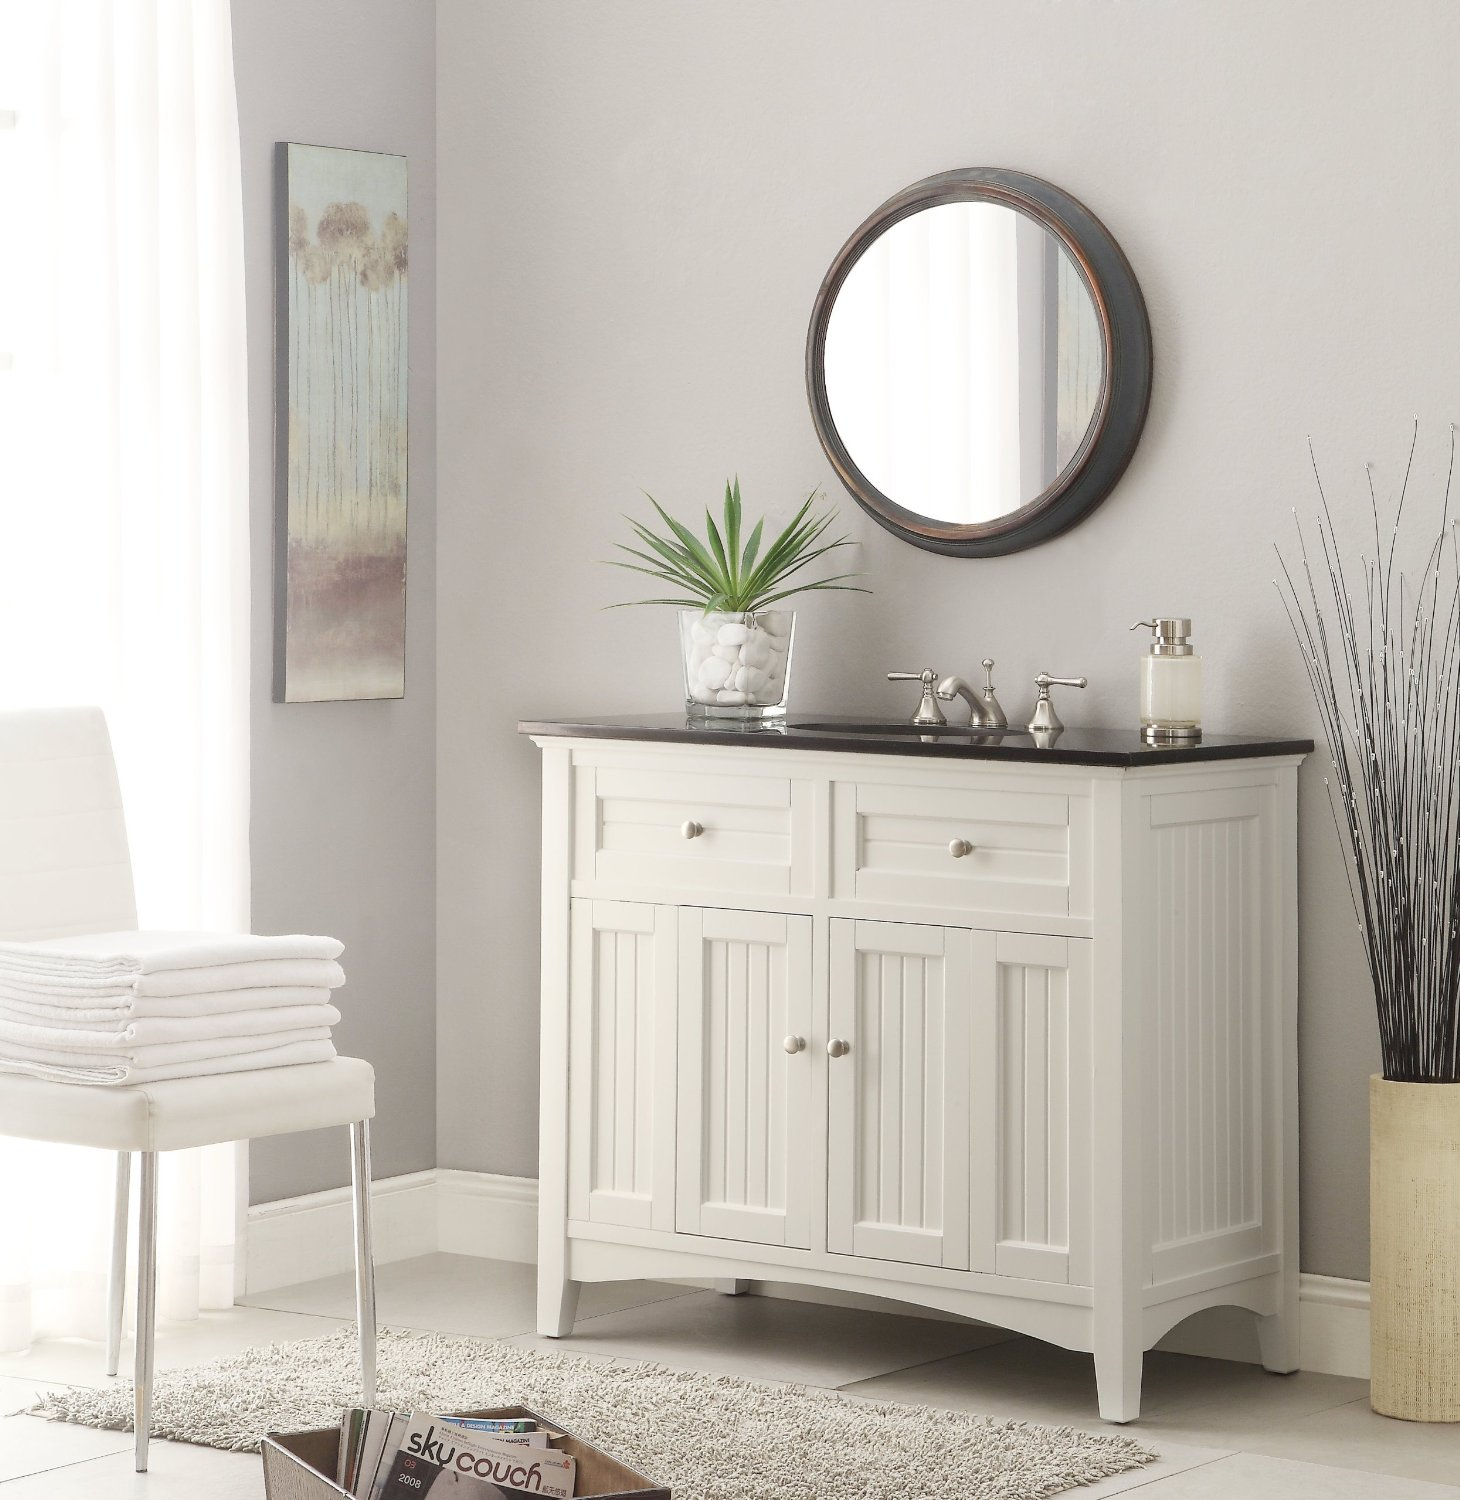 Antique White Bathroom Cabinets adelina 48.75†inch antique white sink bathroom vanity, black